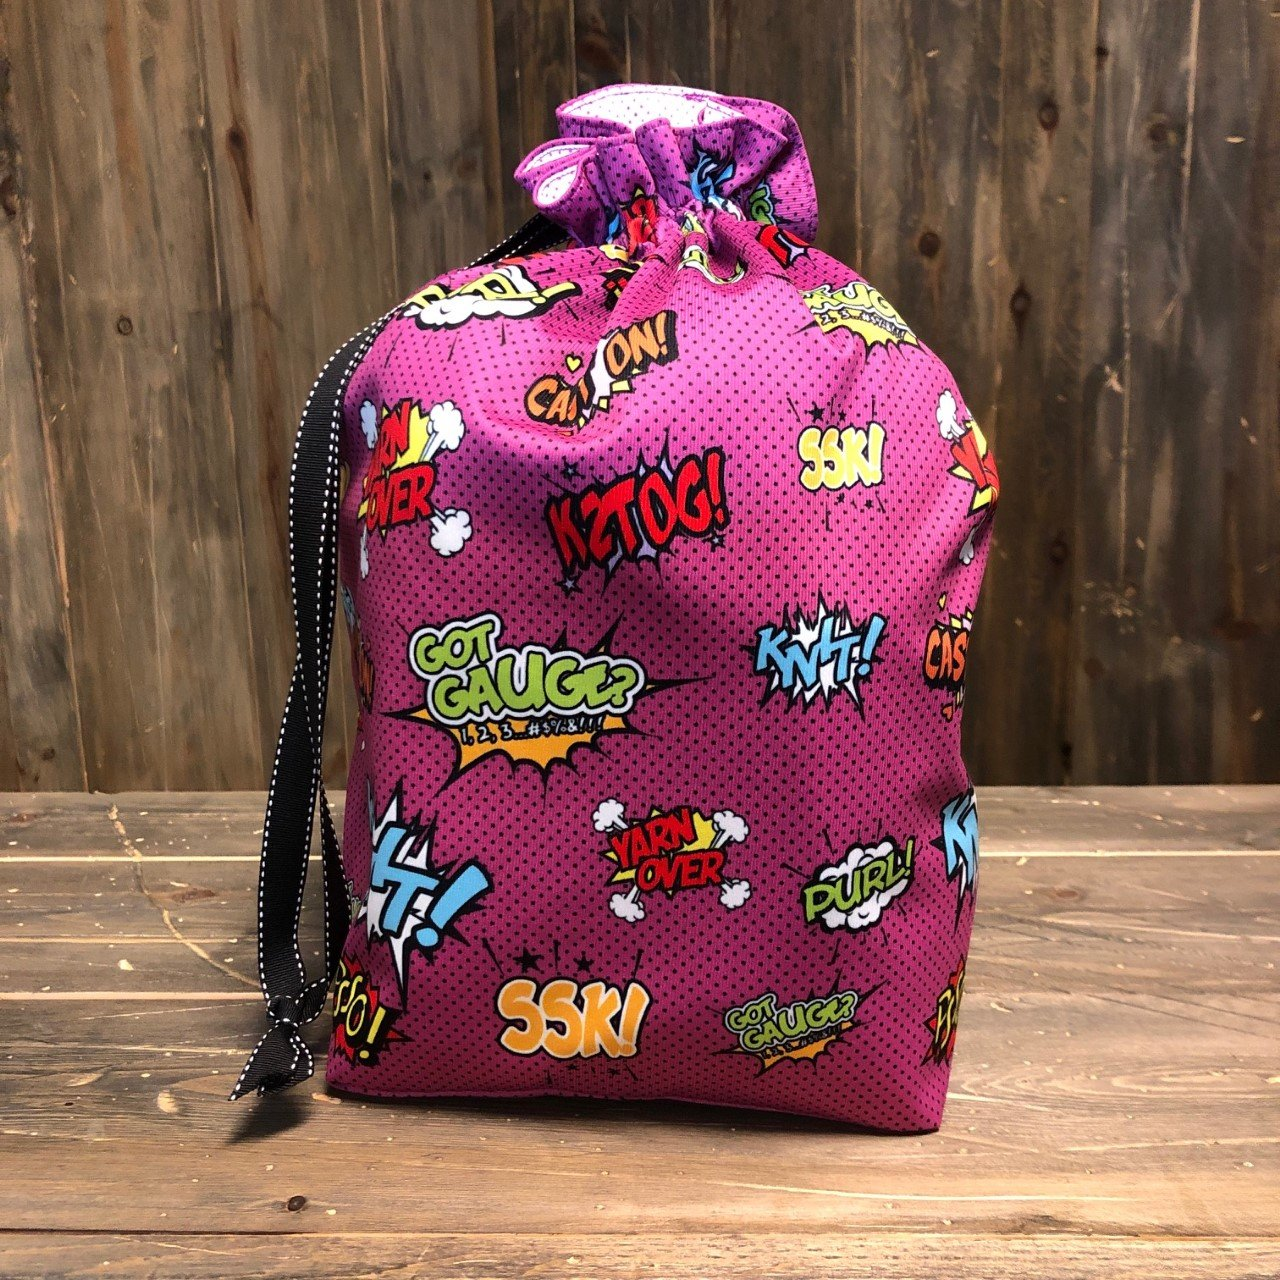 Raspberry Comical Knitters  - Makers' Exclusive Project Bag